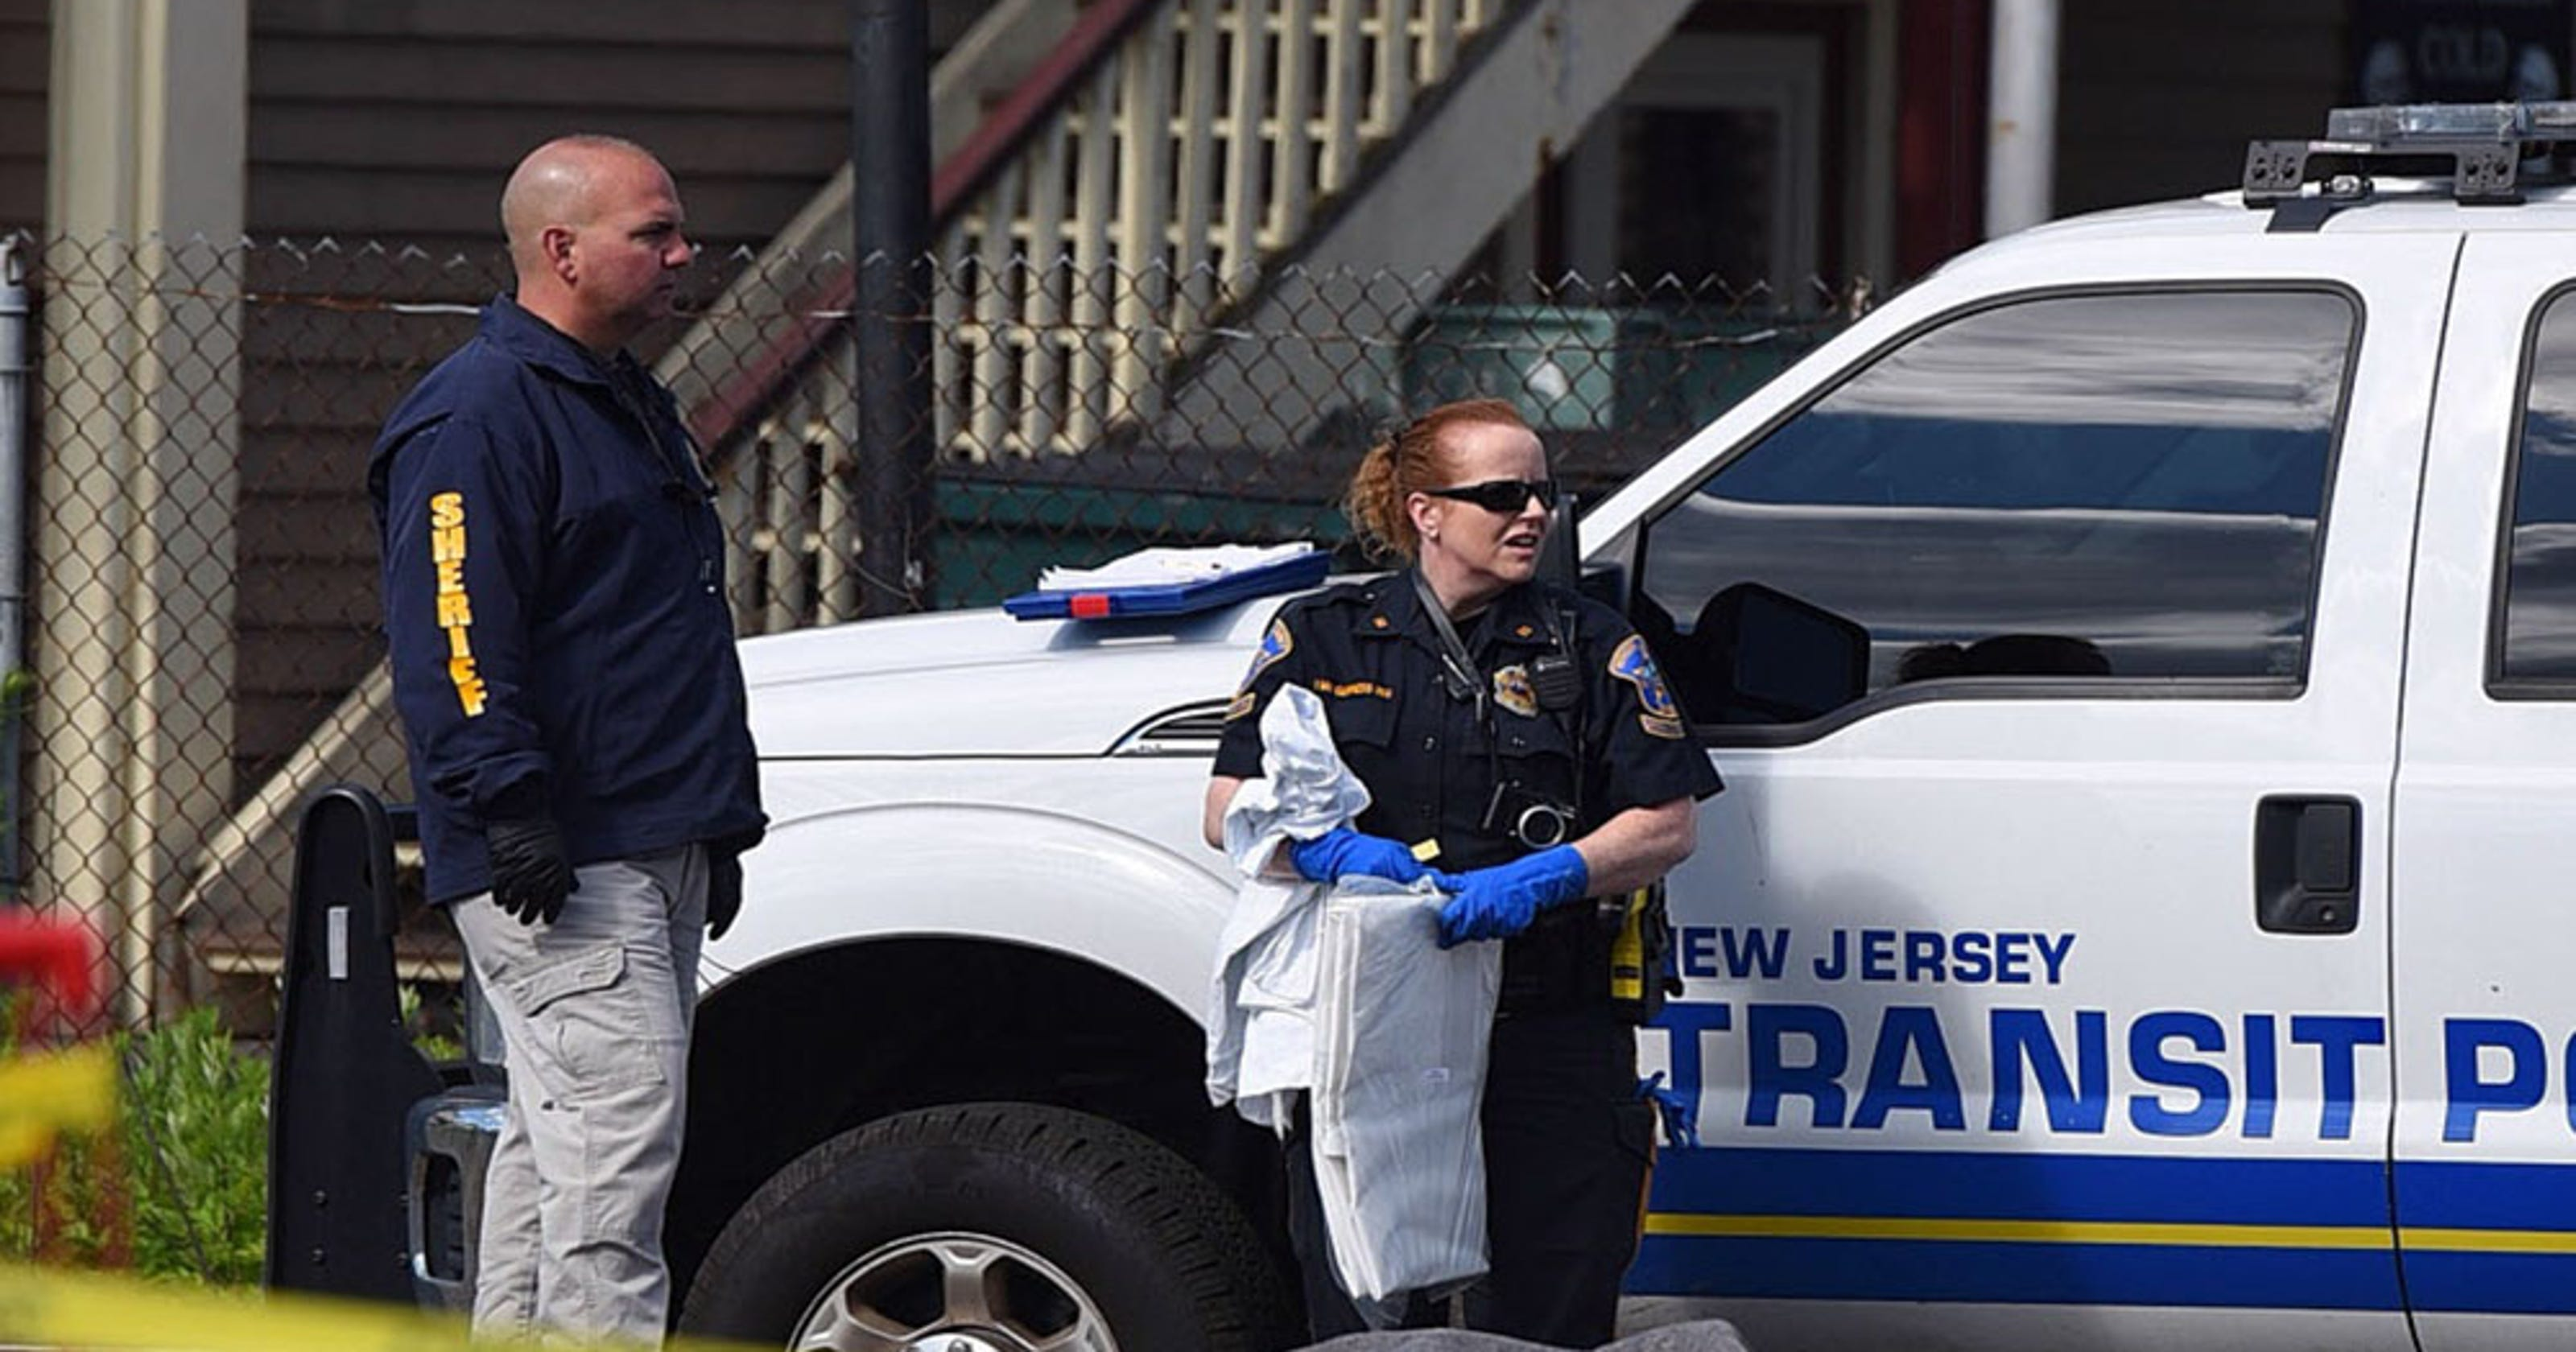 Police identify man struck and killed by NJ Transit train in